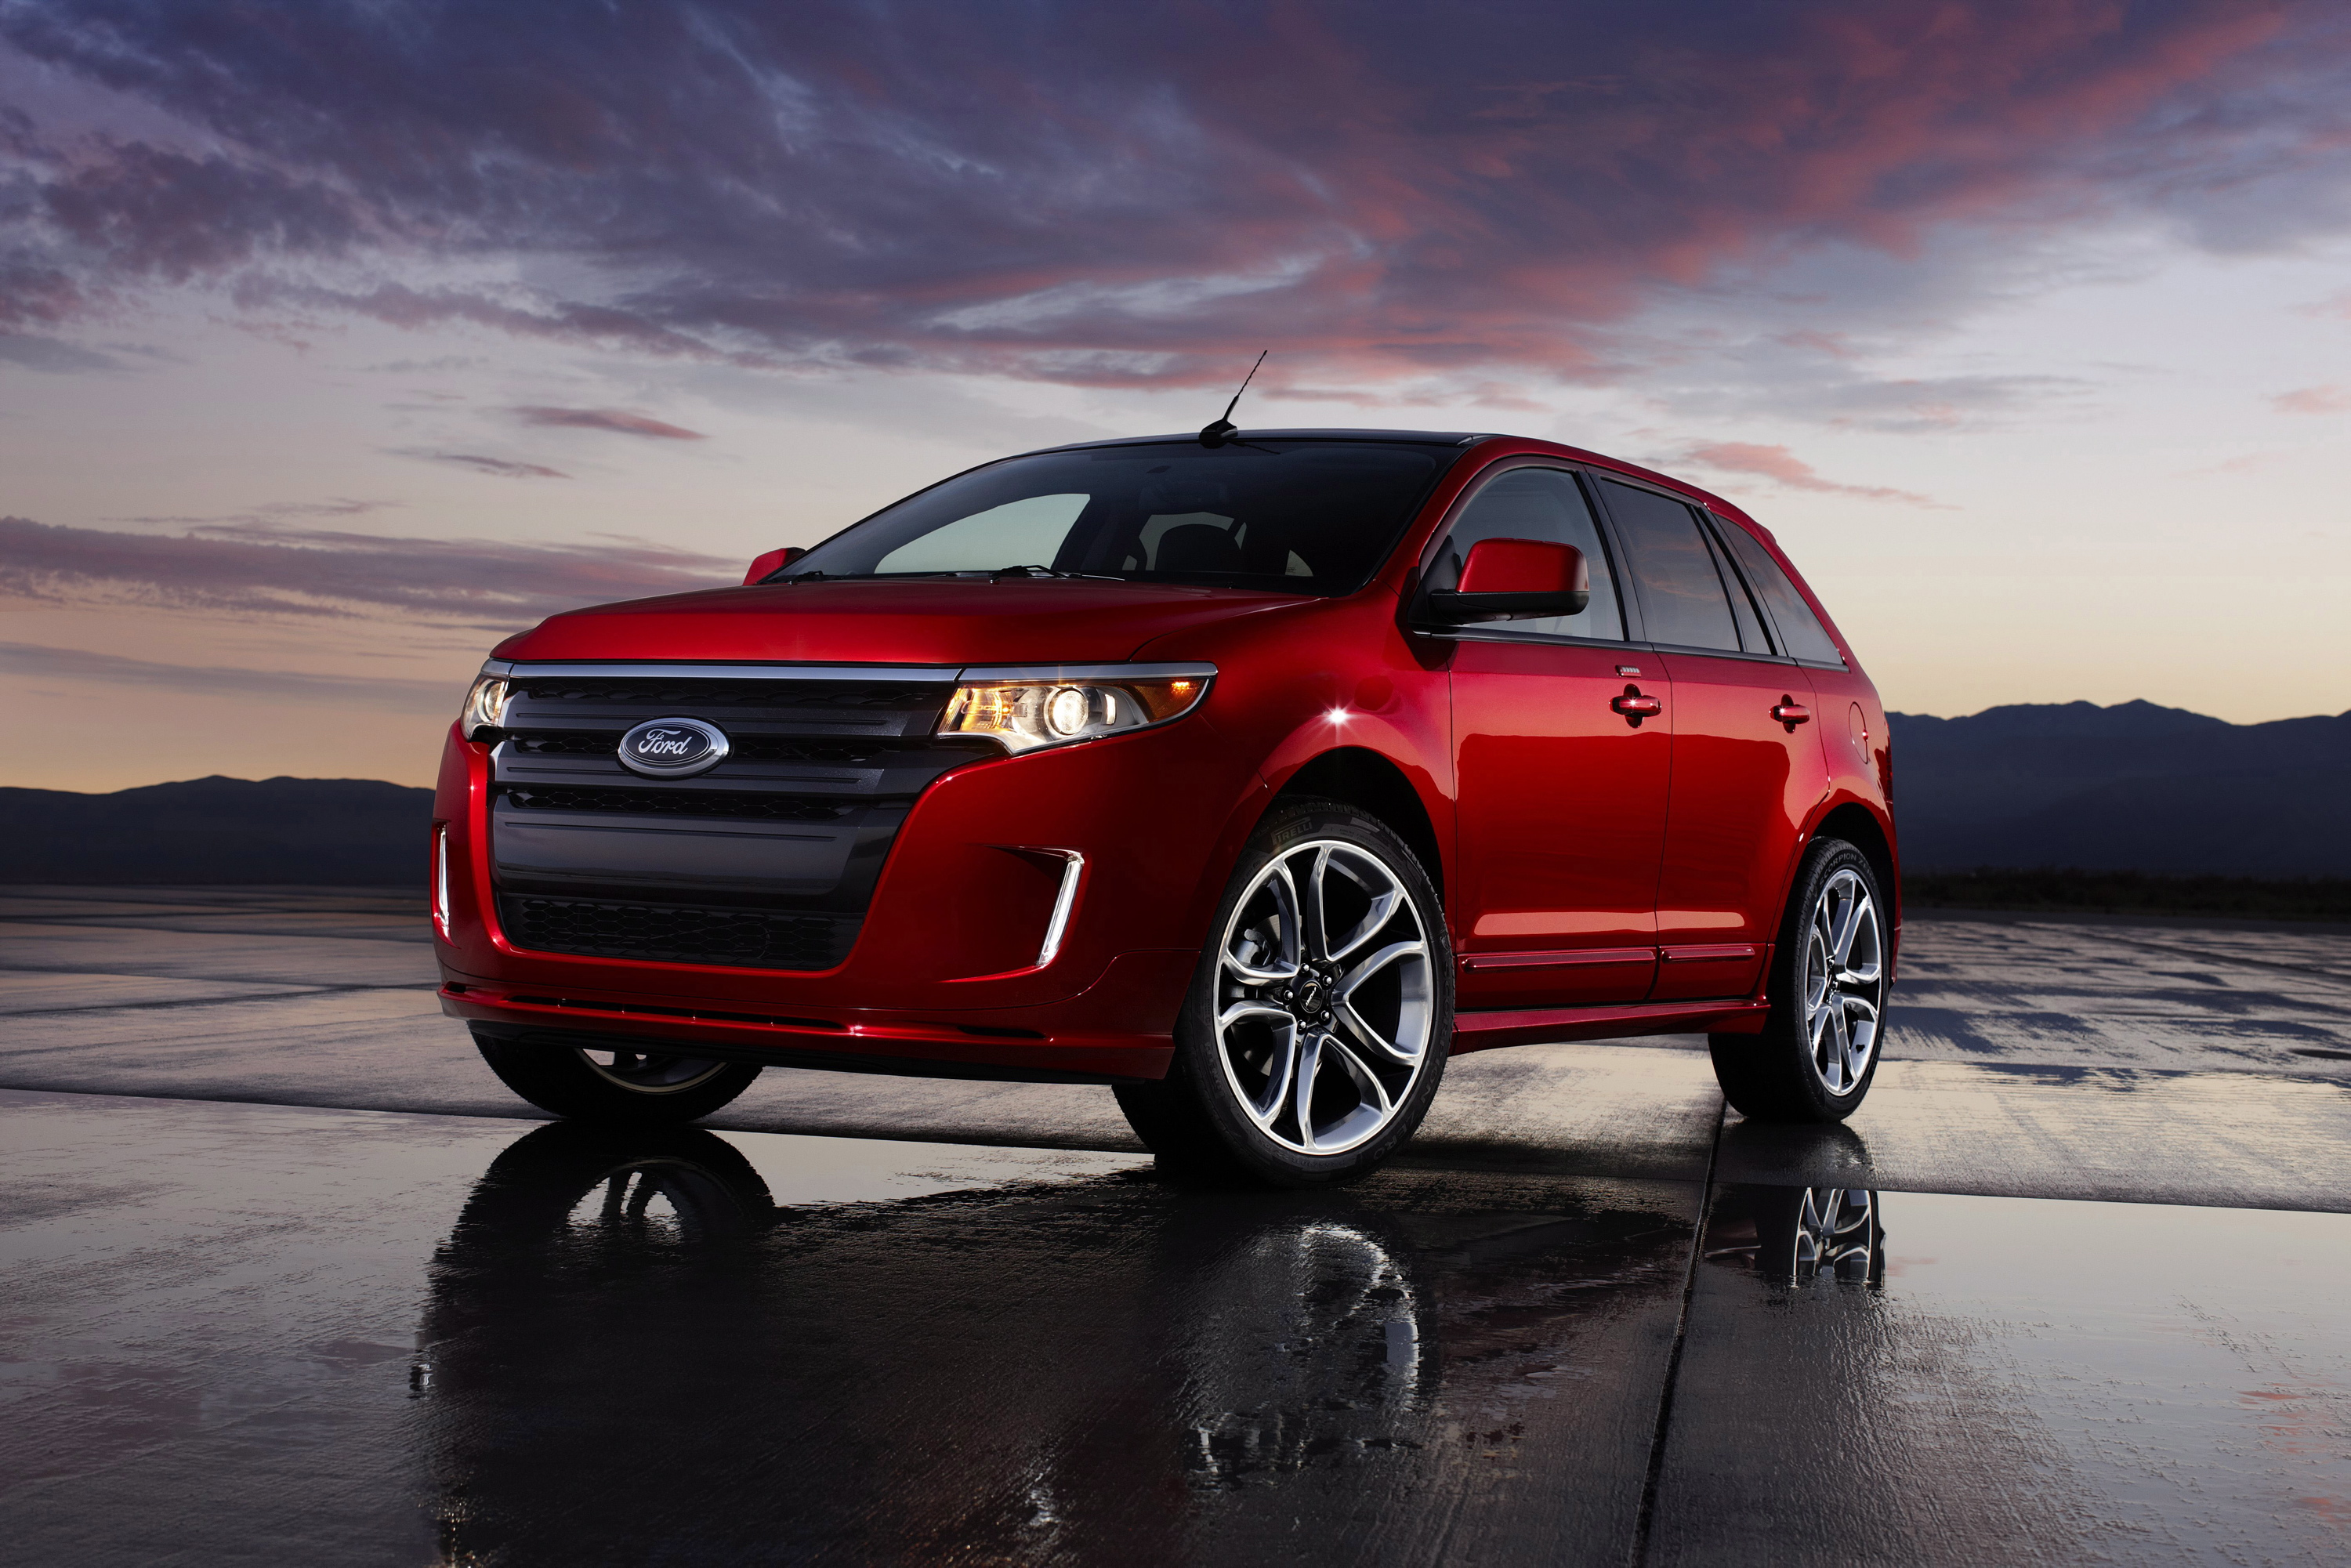 2011 Ford Edge Sel Reviews Top Car 2019 2020 2001 Lexus Is300 Engine Diagram Likewise 2017 Land Rover Discovery Ecoboost Vs V 2018